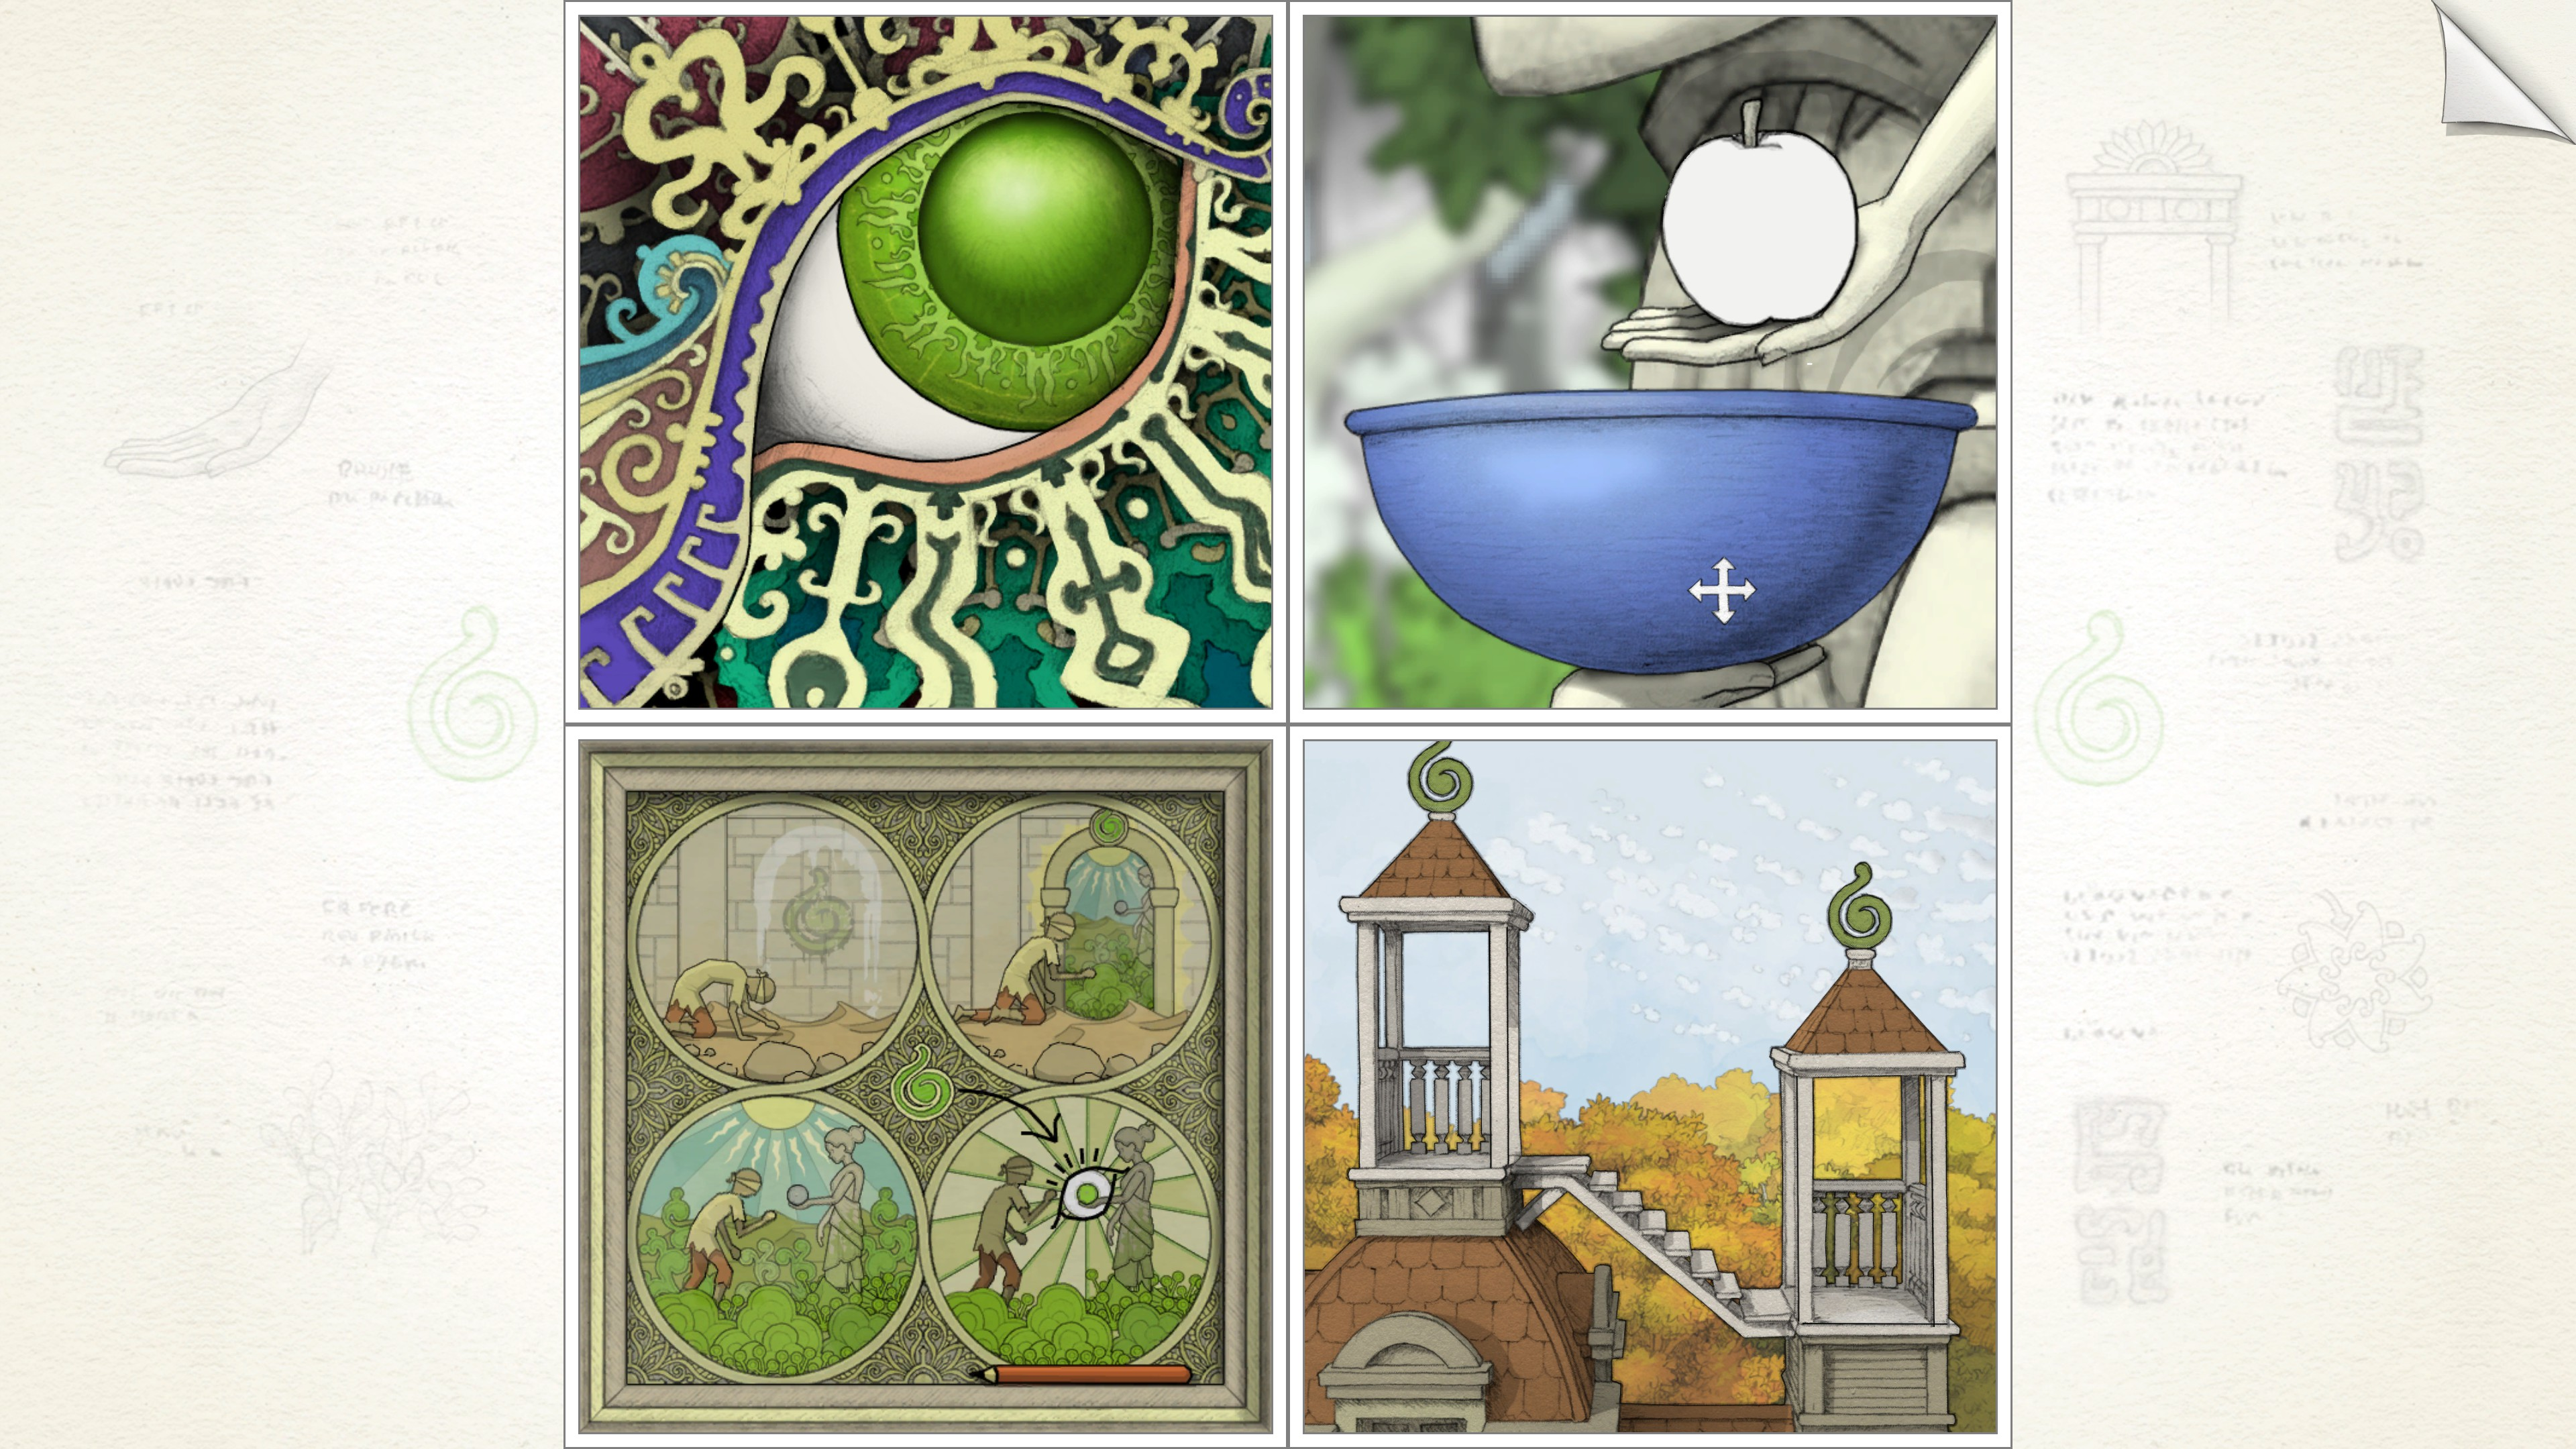 top left, ornate green dragon eye. top right, statue holding a colorless apple over a bowl. bottom right, two towers with stairs between them. bottom left, a diagram showing a man going from a desert into a garden and receiving a green apple from a statue. an eye is drawn over the apple in the diagram.